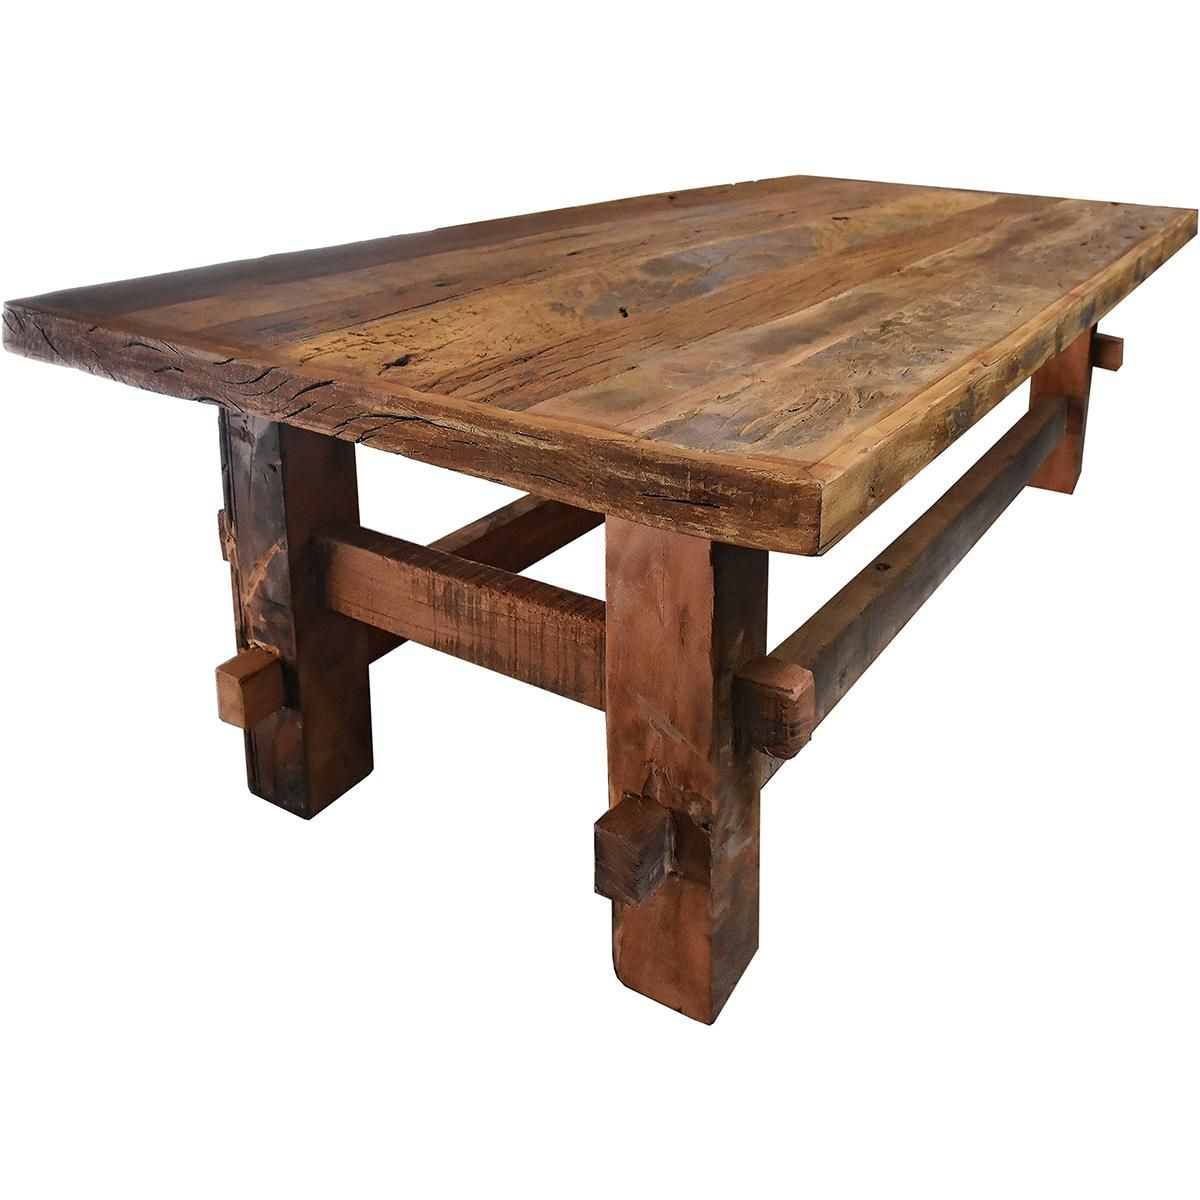 Country Reclaimed Wood Coffee Table For Sale Image 3 Of 3 Reclaimed Wood Coffee Table Coffee Table Wood Coffee Table